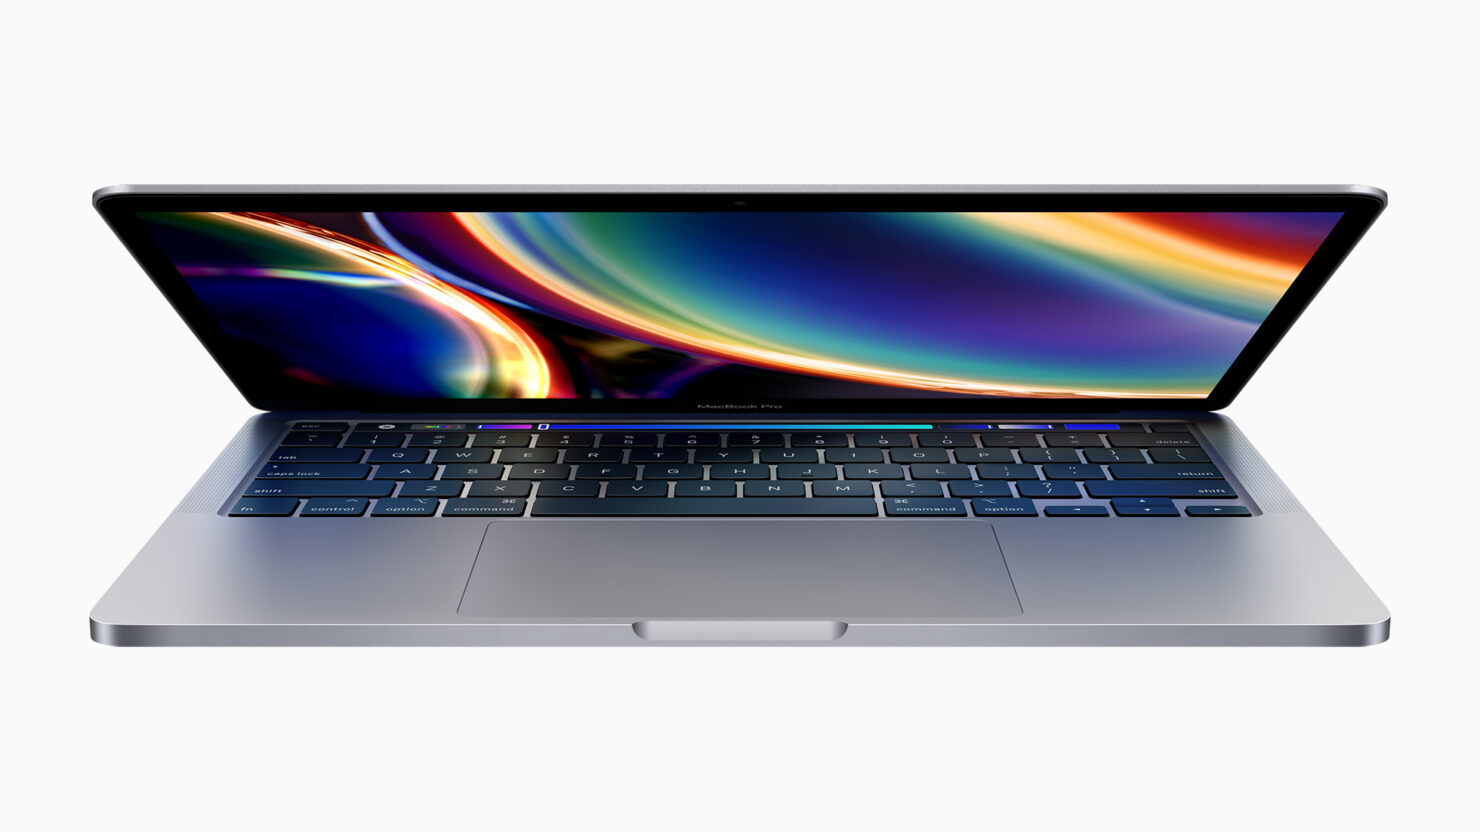 Apple Now Selling Refurbished 2020 13-inch MacBook Pro Models With up to $200 Discounts